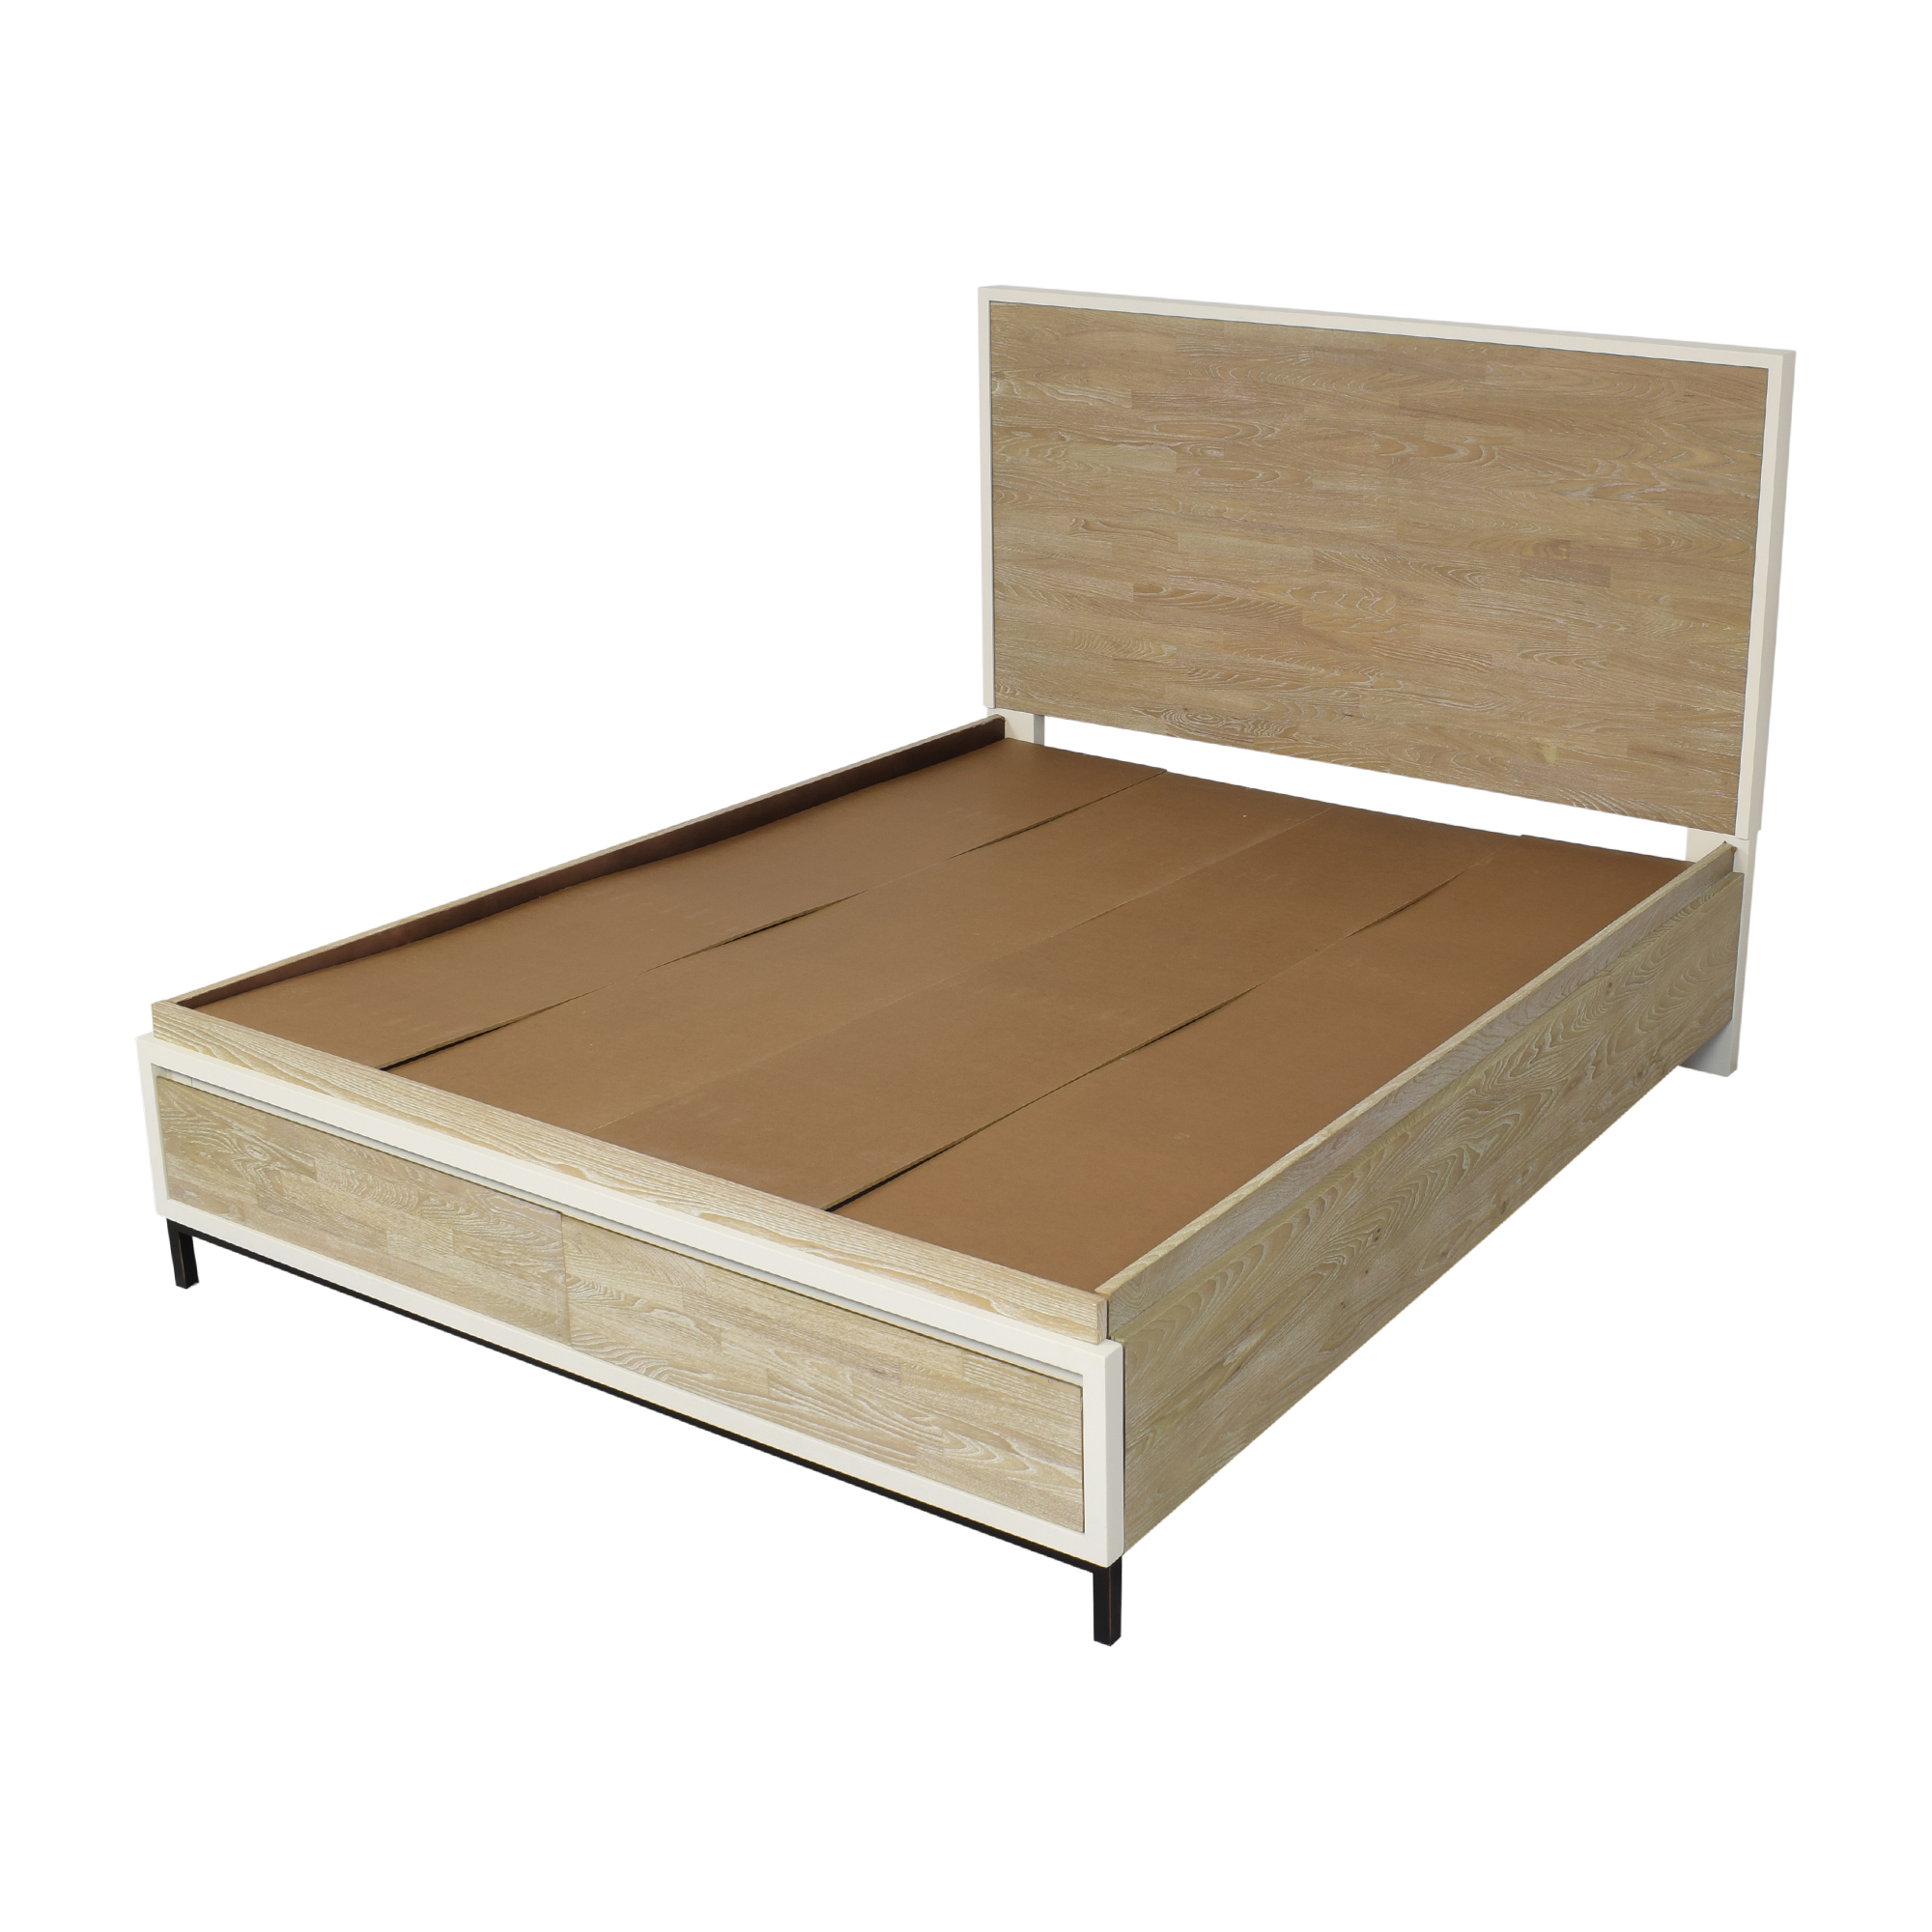 Universal Furniture Macy's Avery Storage Queen Bed used